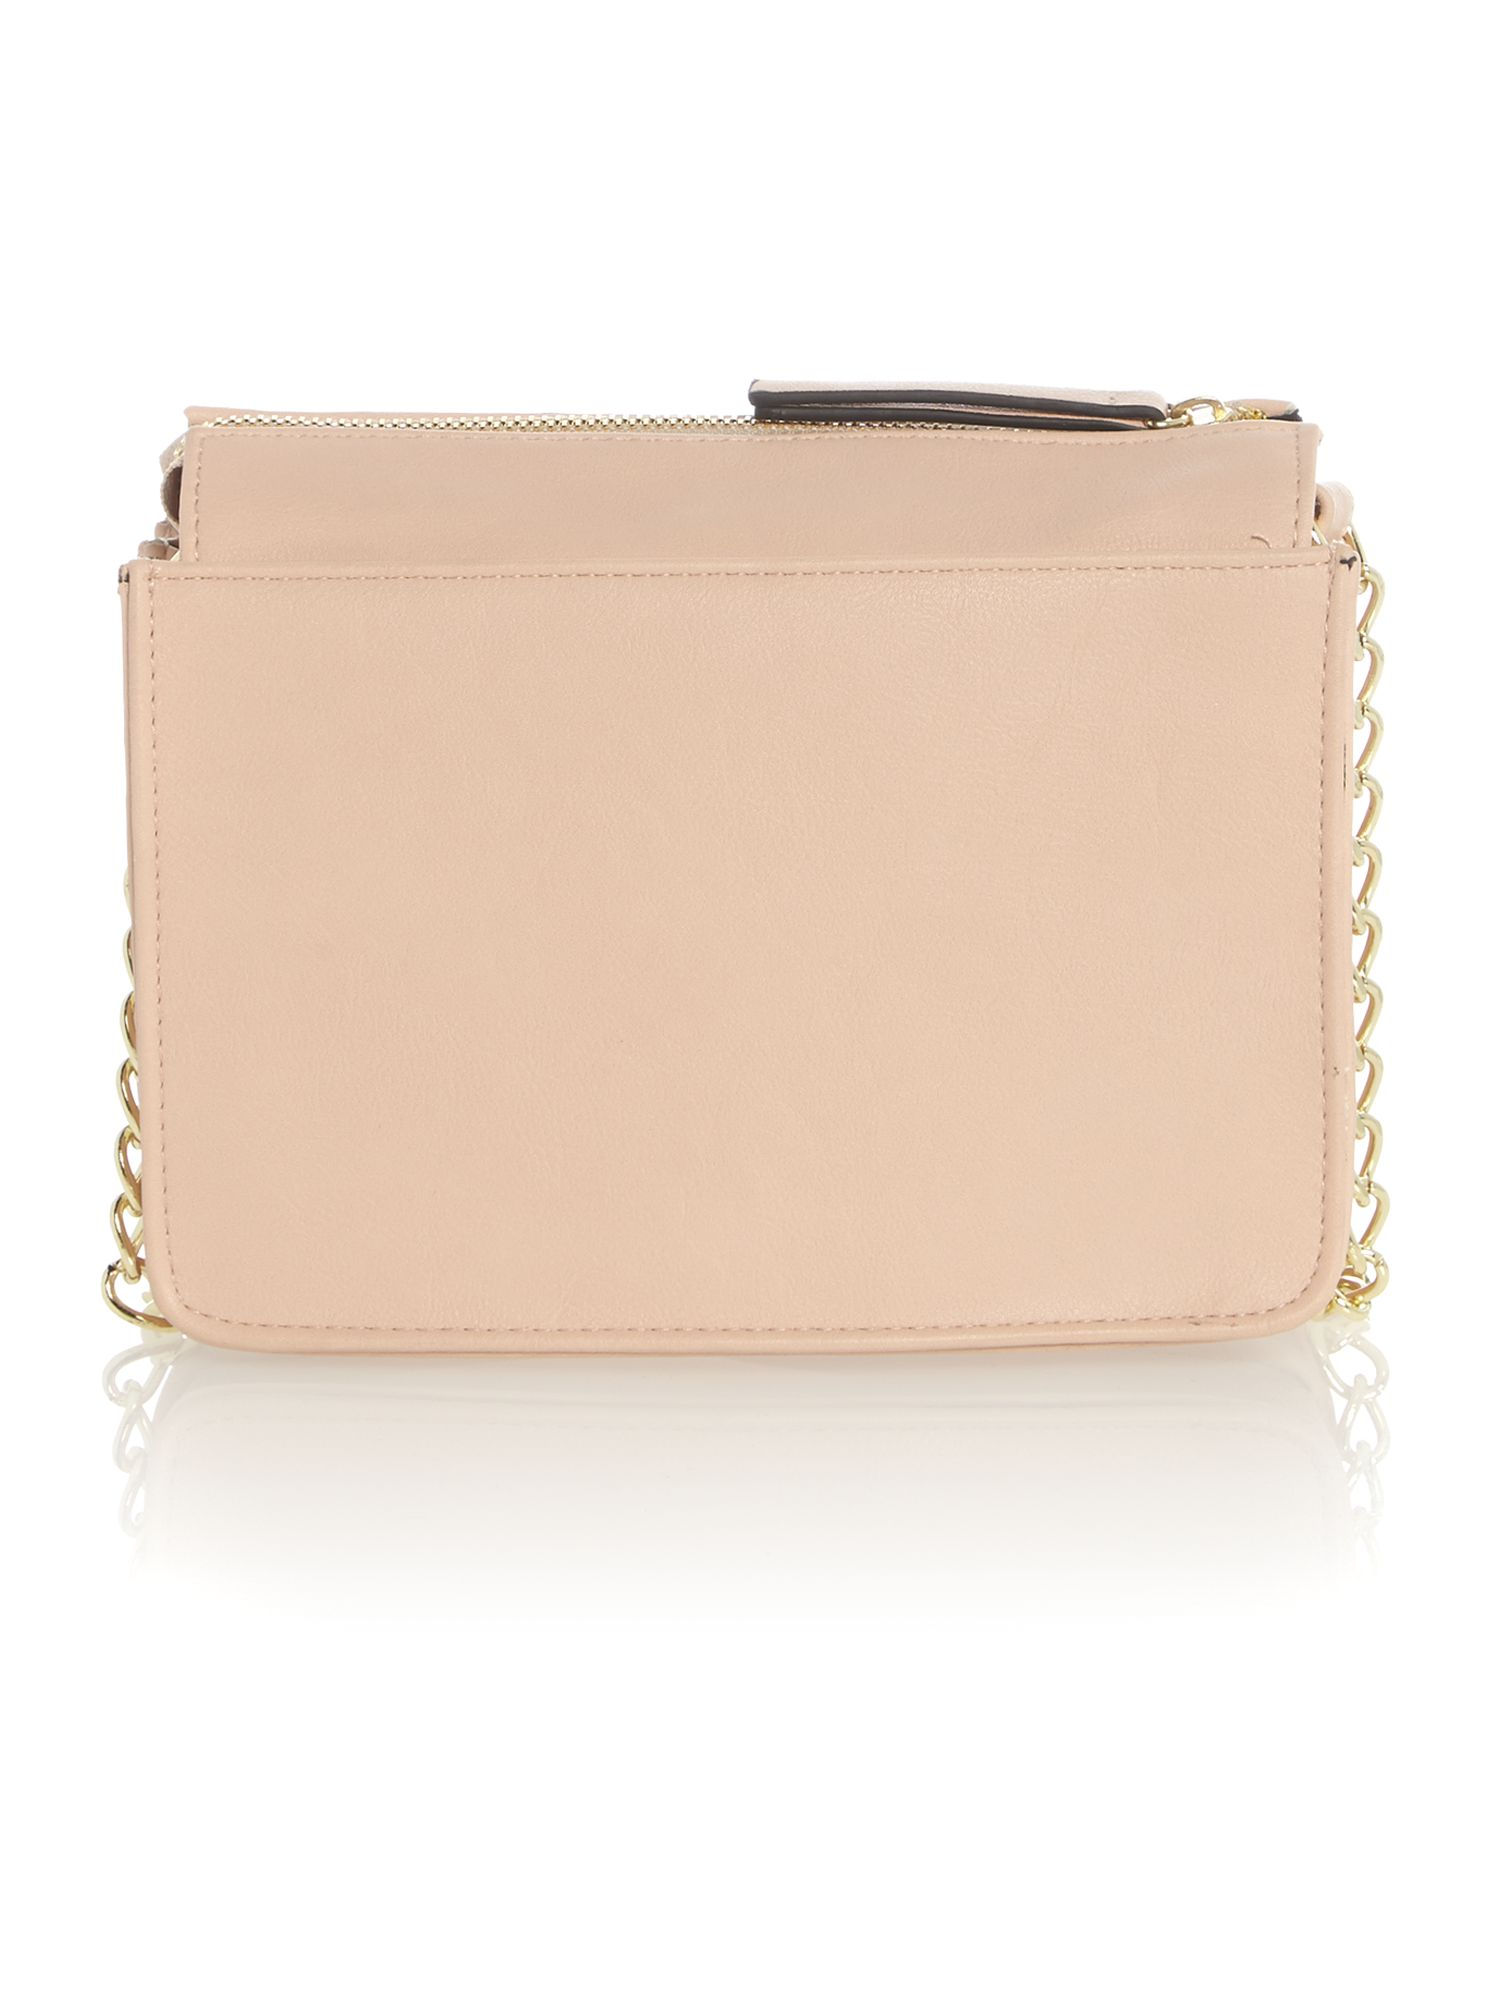 Camilla cross body satchel bag